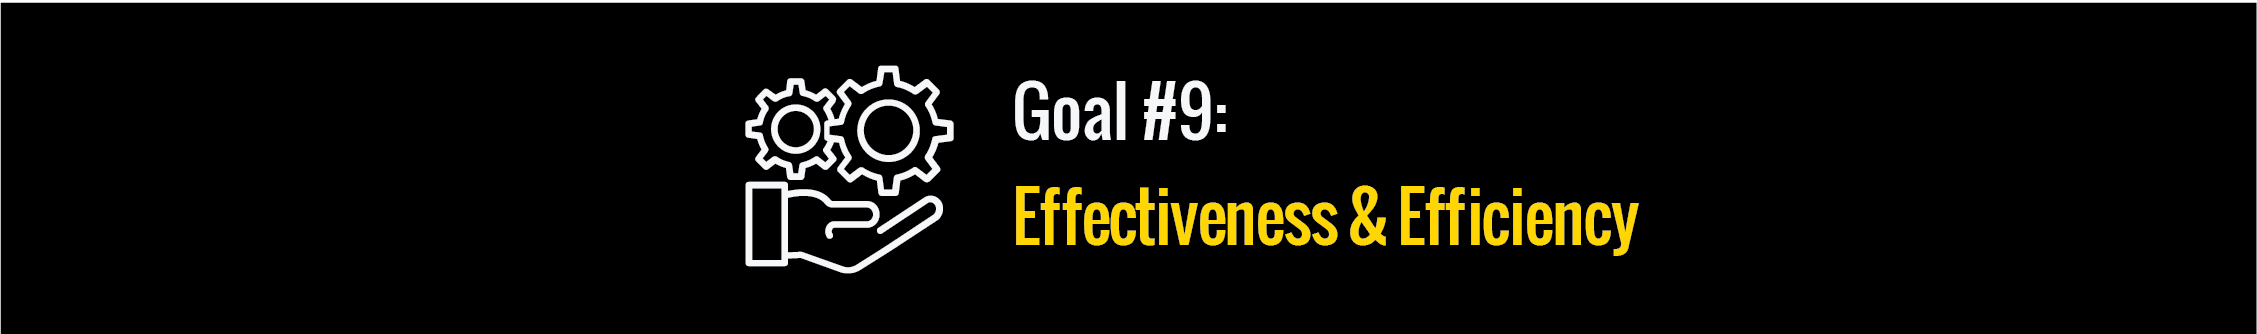 Goal #9: Effectiveness & Efficiency